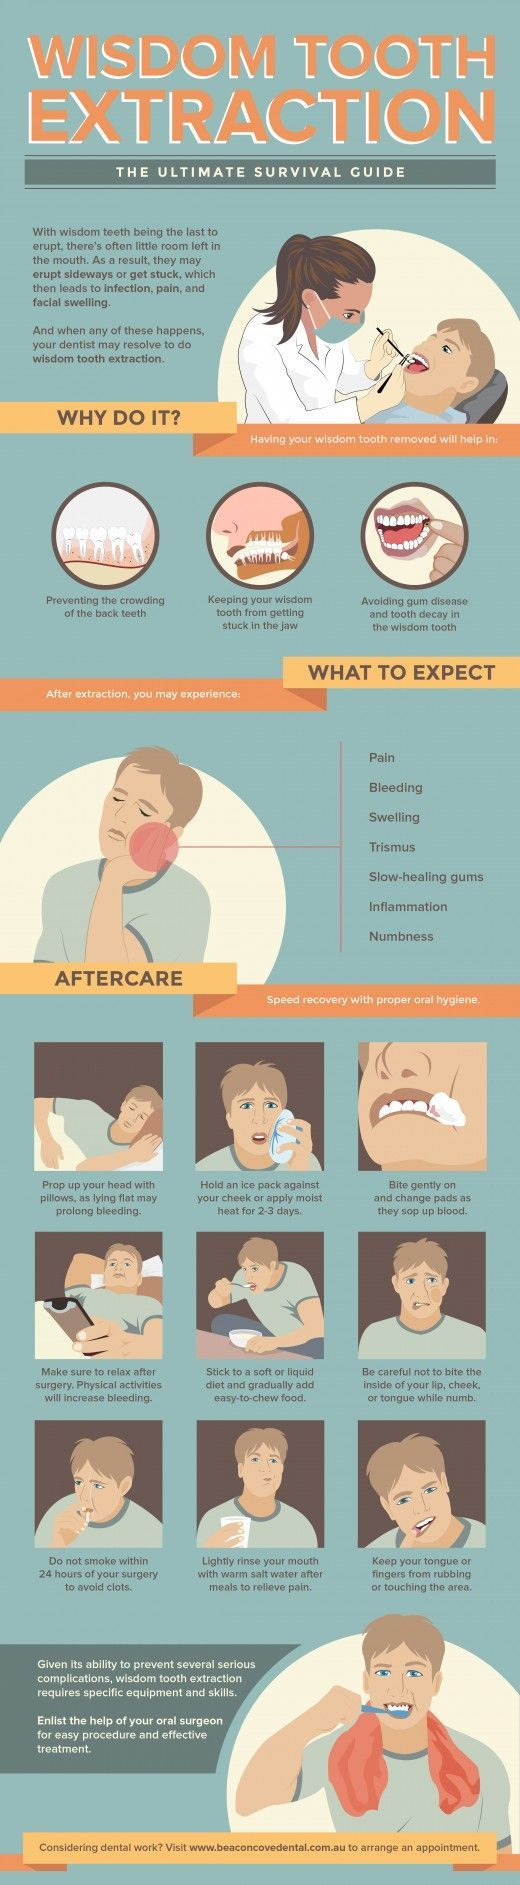 Handy guide to wisdom tooth extraction, although I wish I'd never ever have to survive it in the first place. :D: